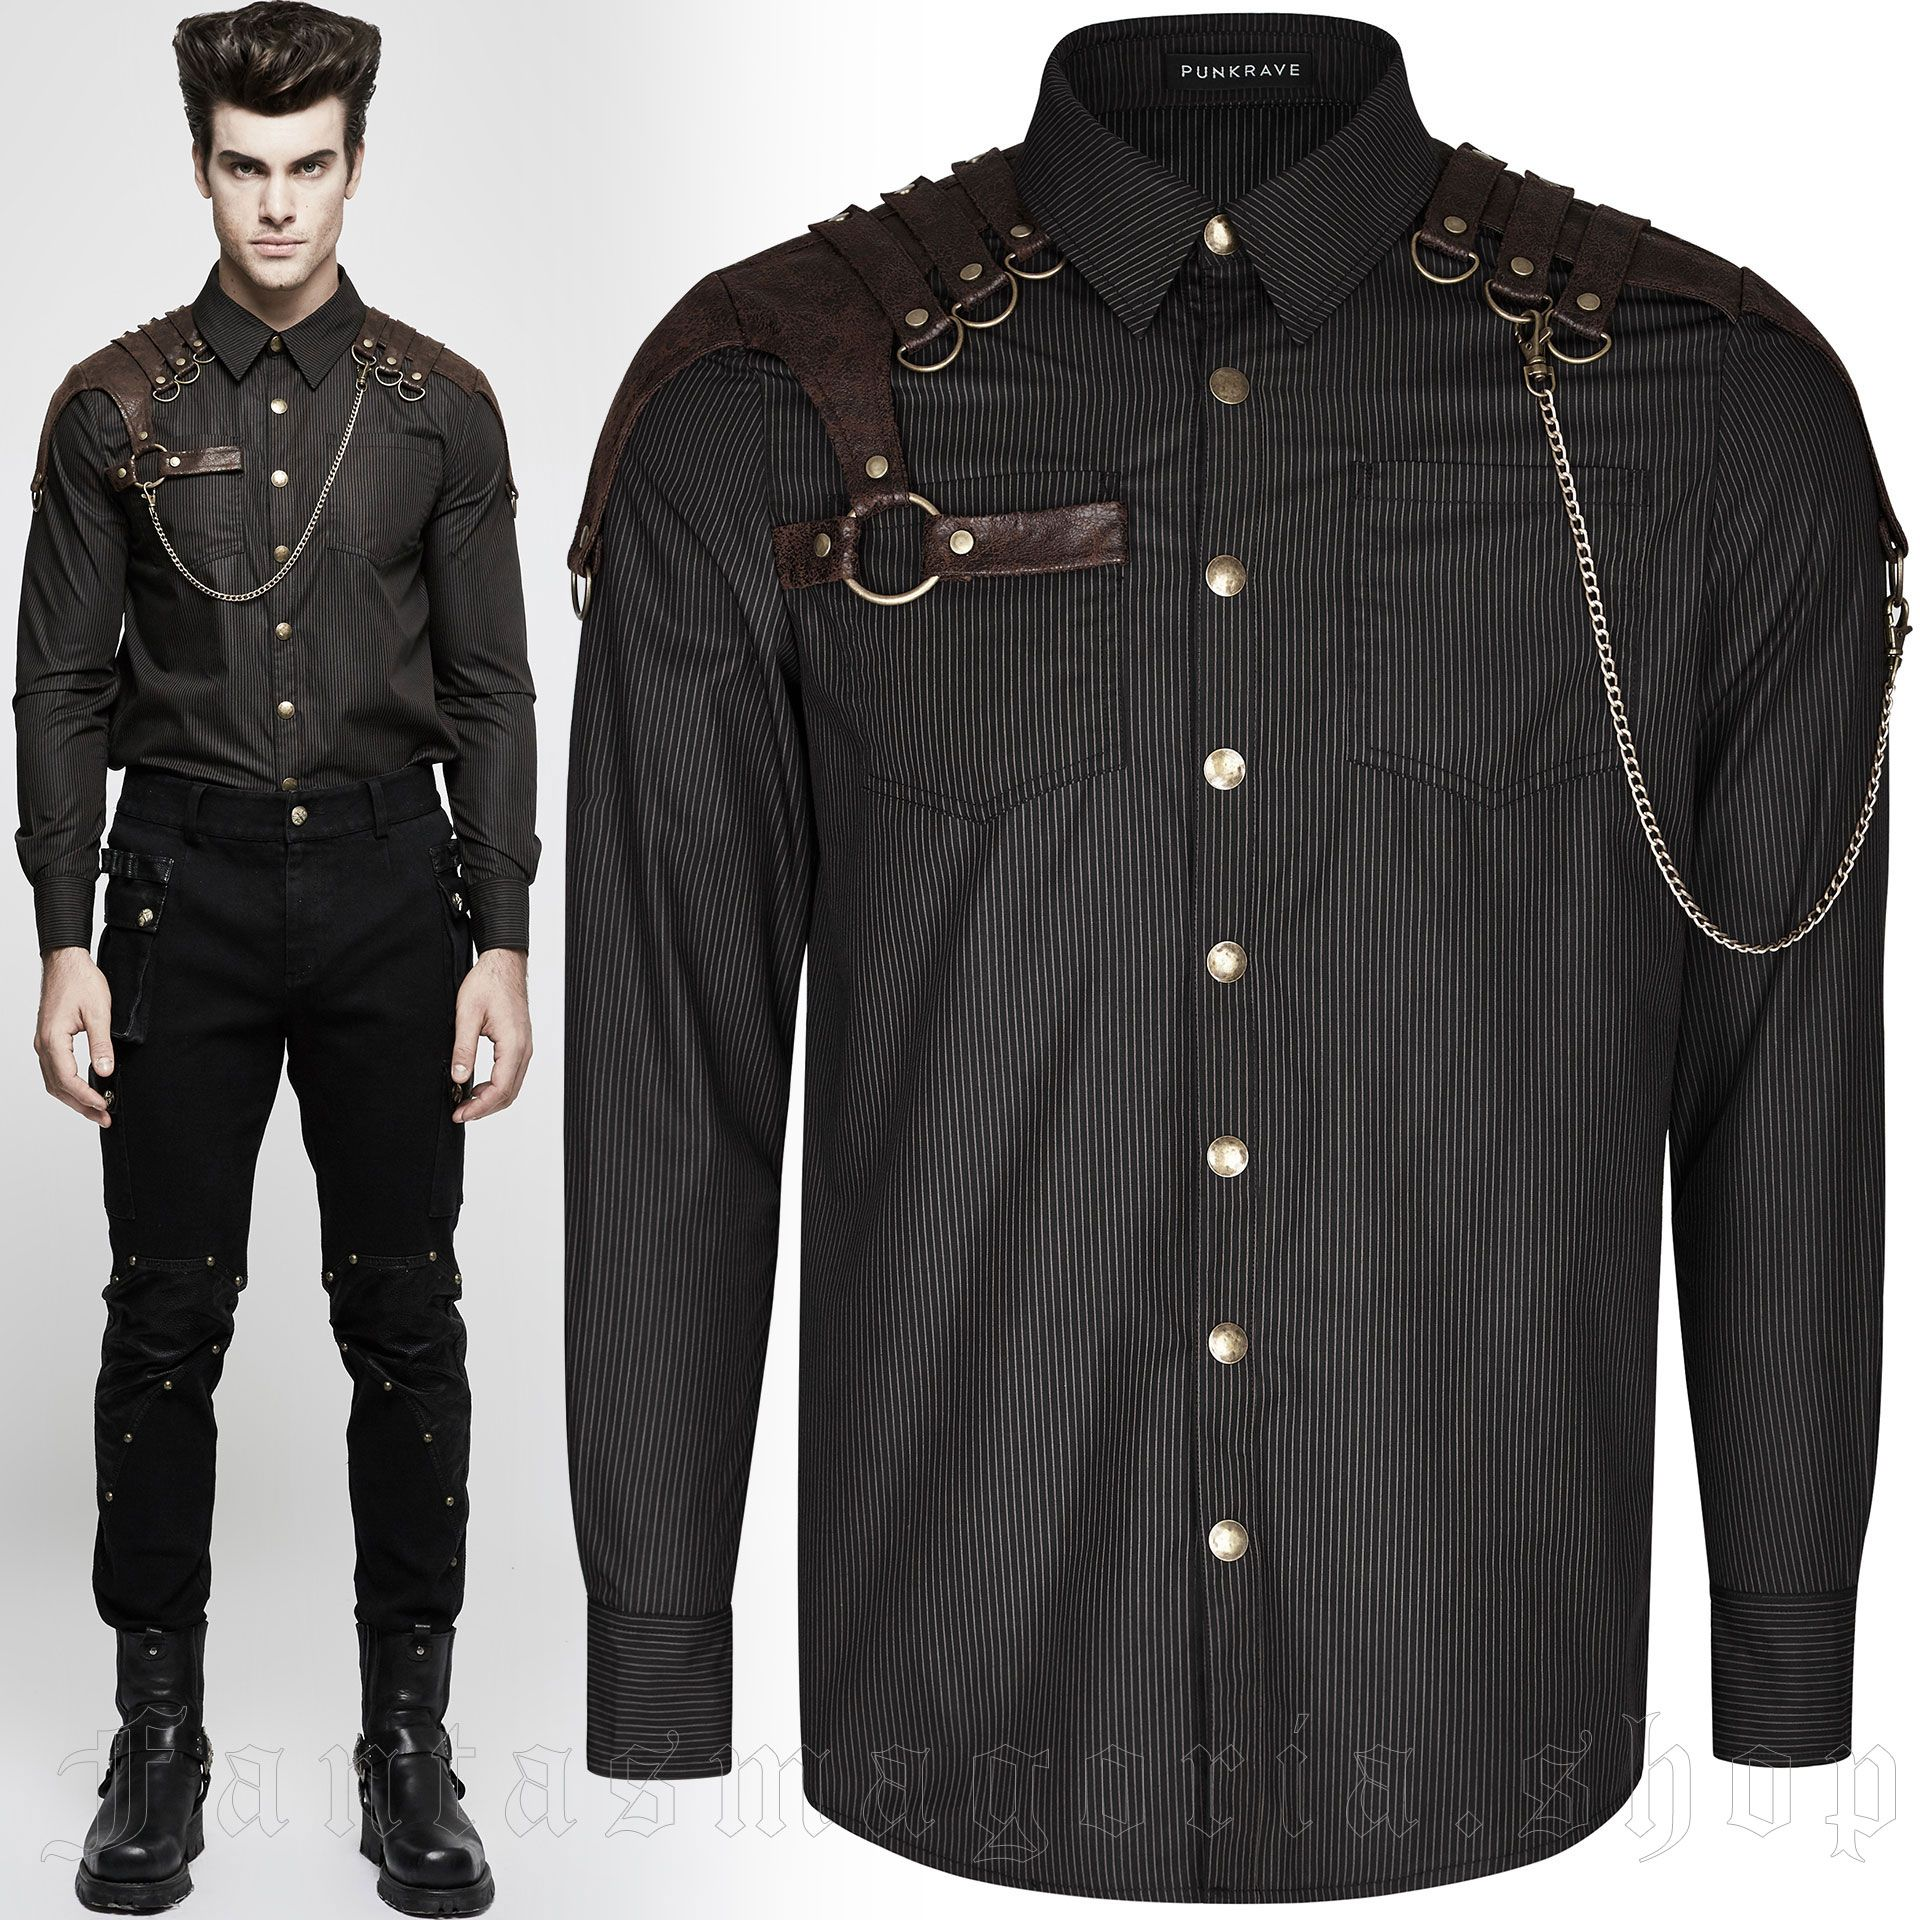 men's Sweeney Todd Shirt by PUNK RAVE brand, code: Y-819/CO